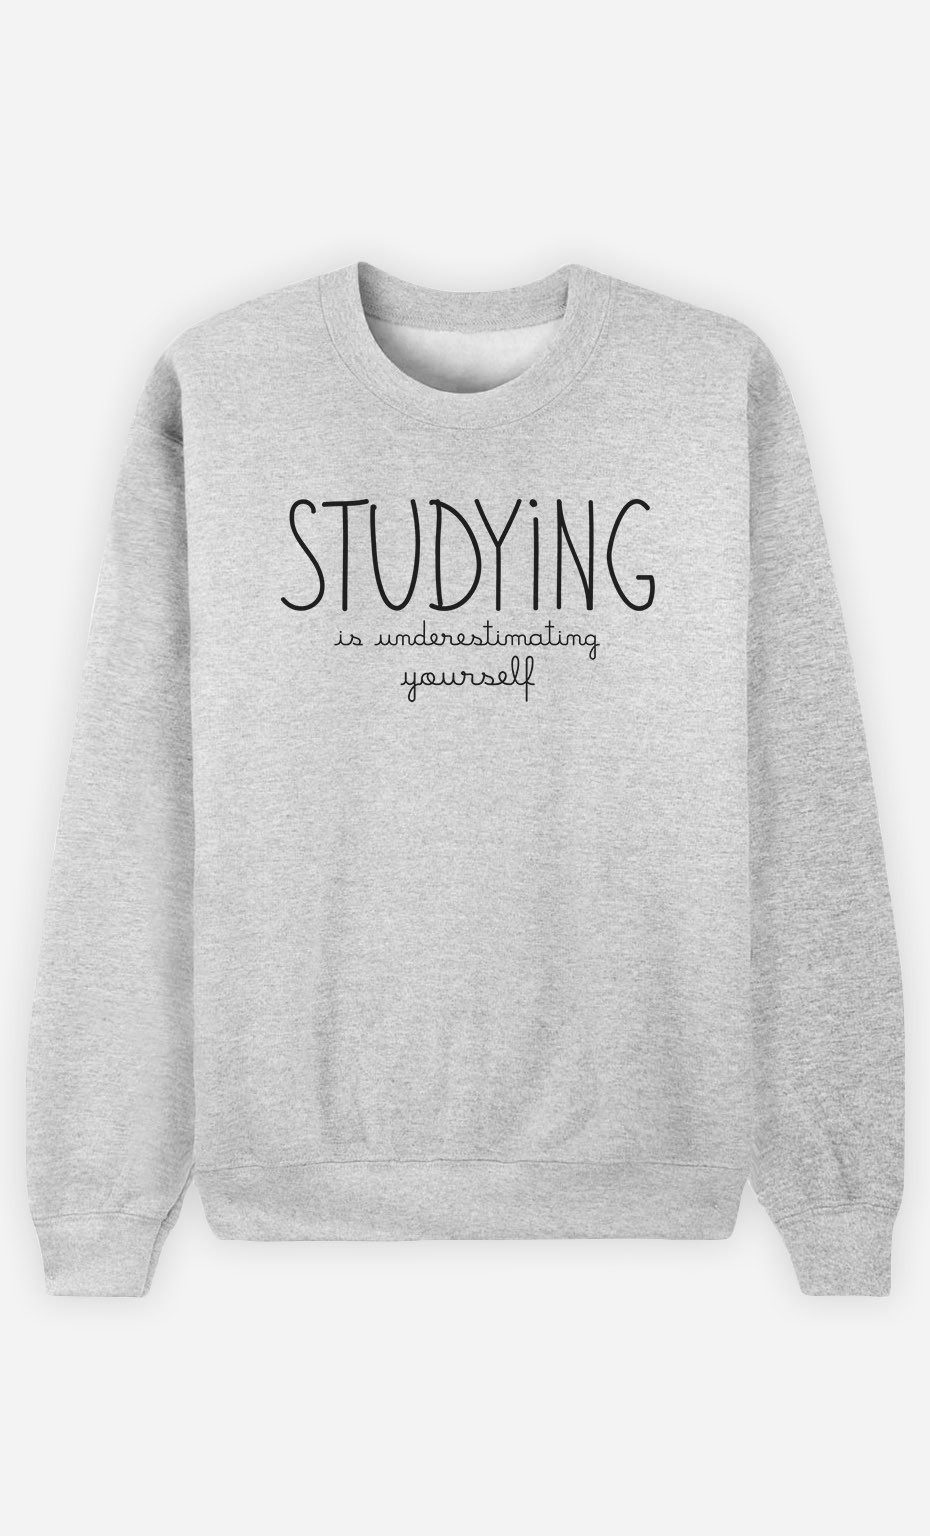 Sweatshirt Studying is Underestimating Yourself